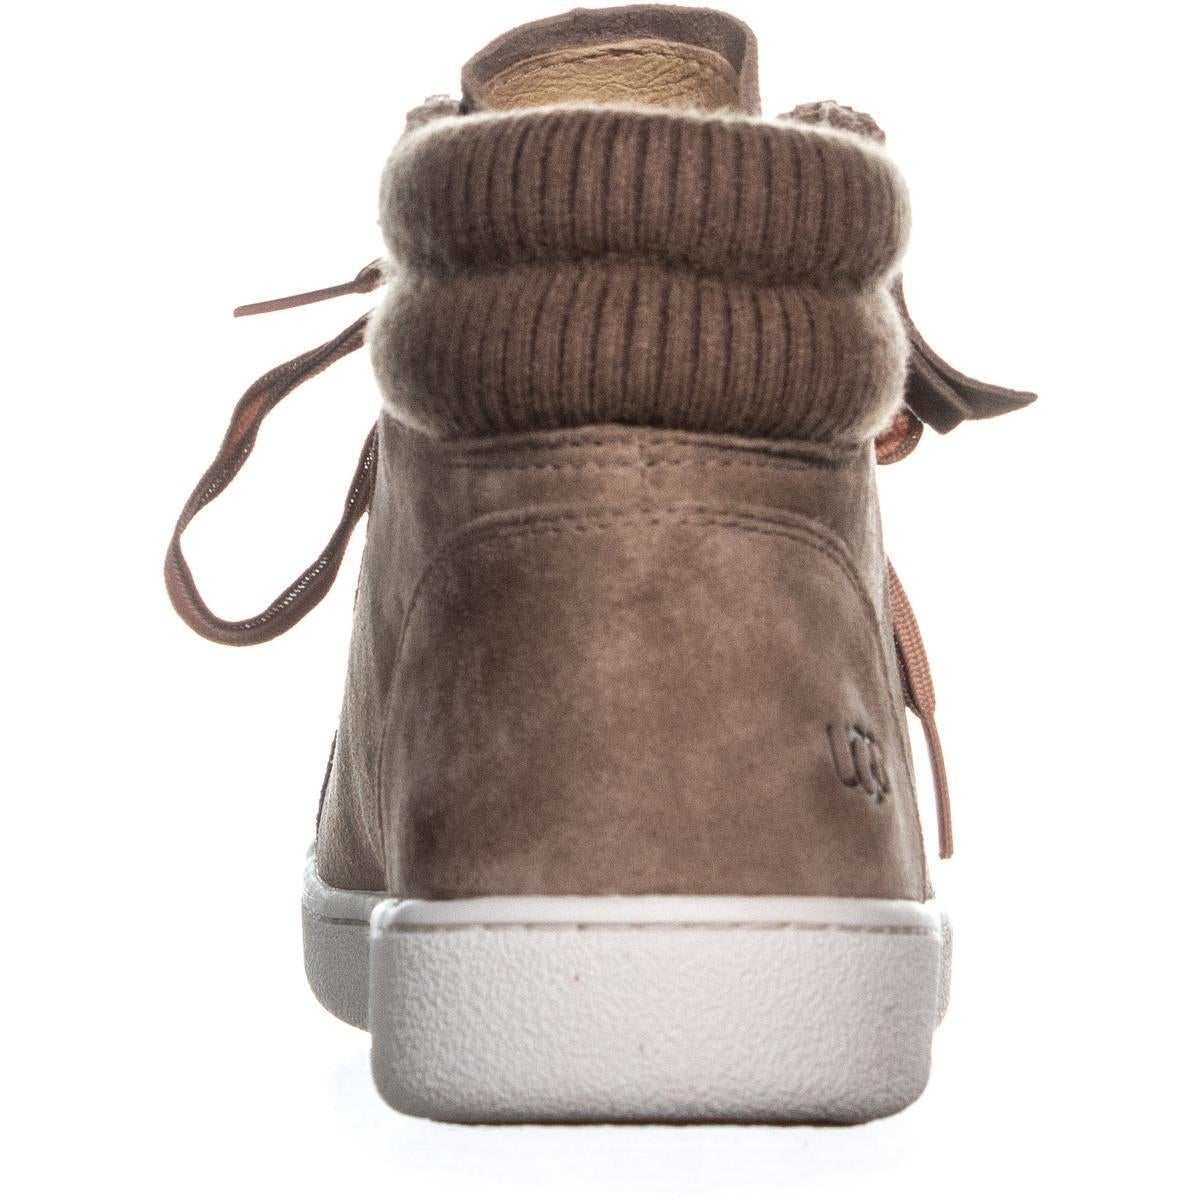 1e136c66999 Shop UGG Olive Lace-Up Sneakers